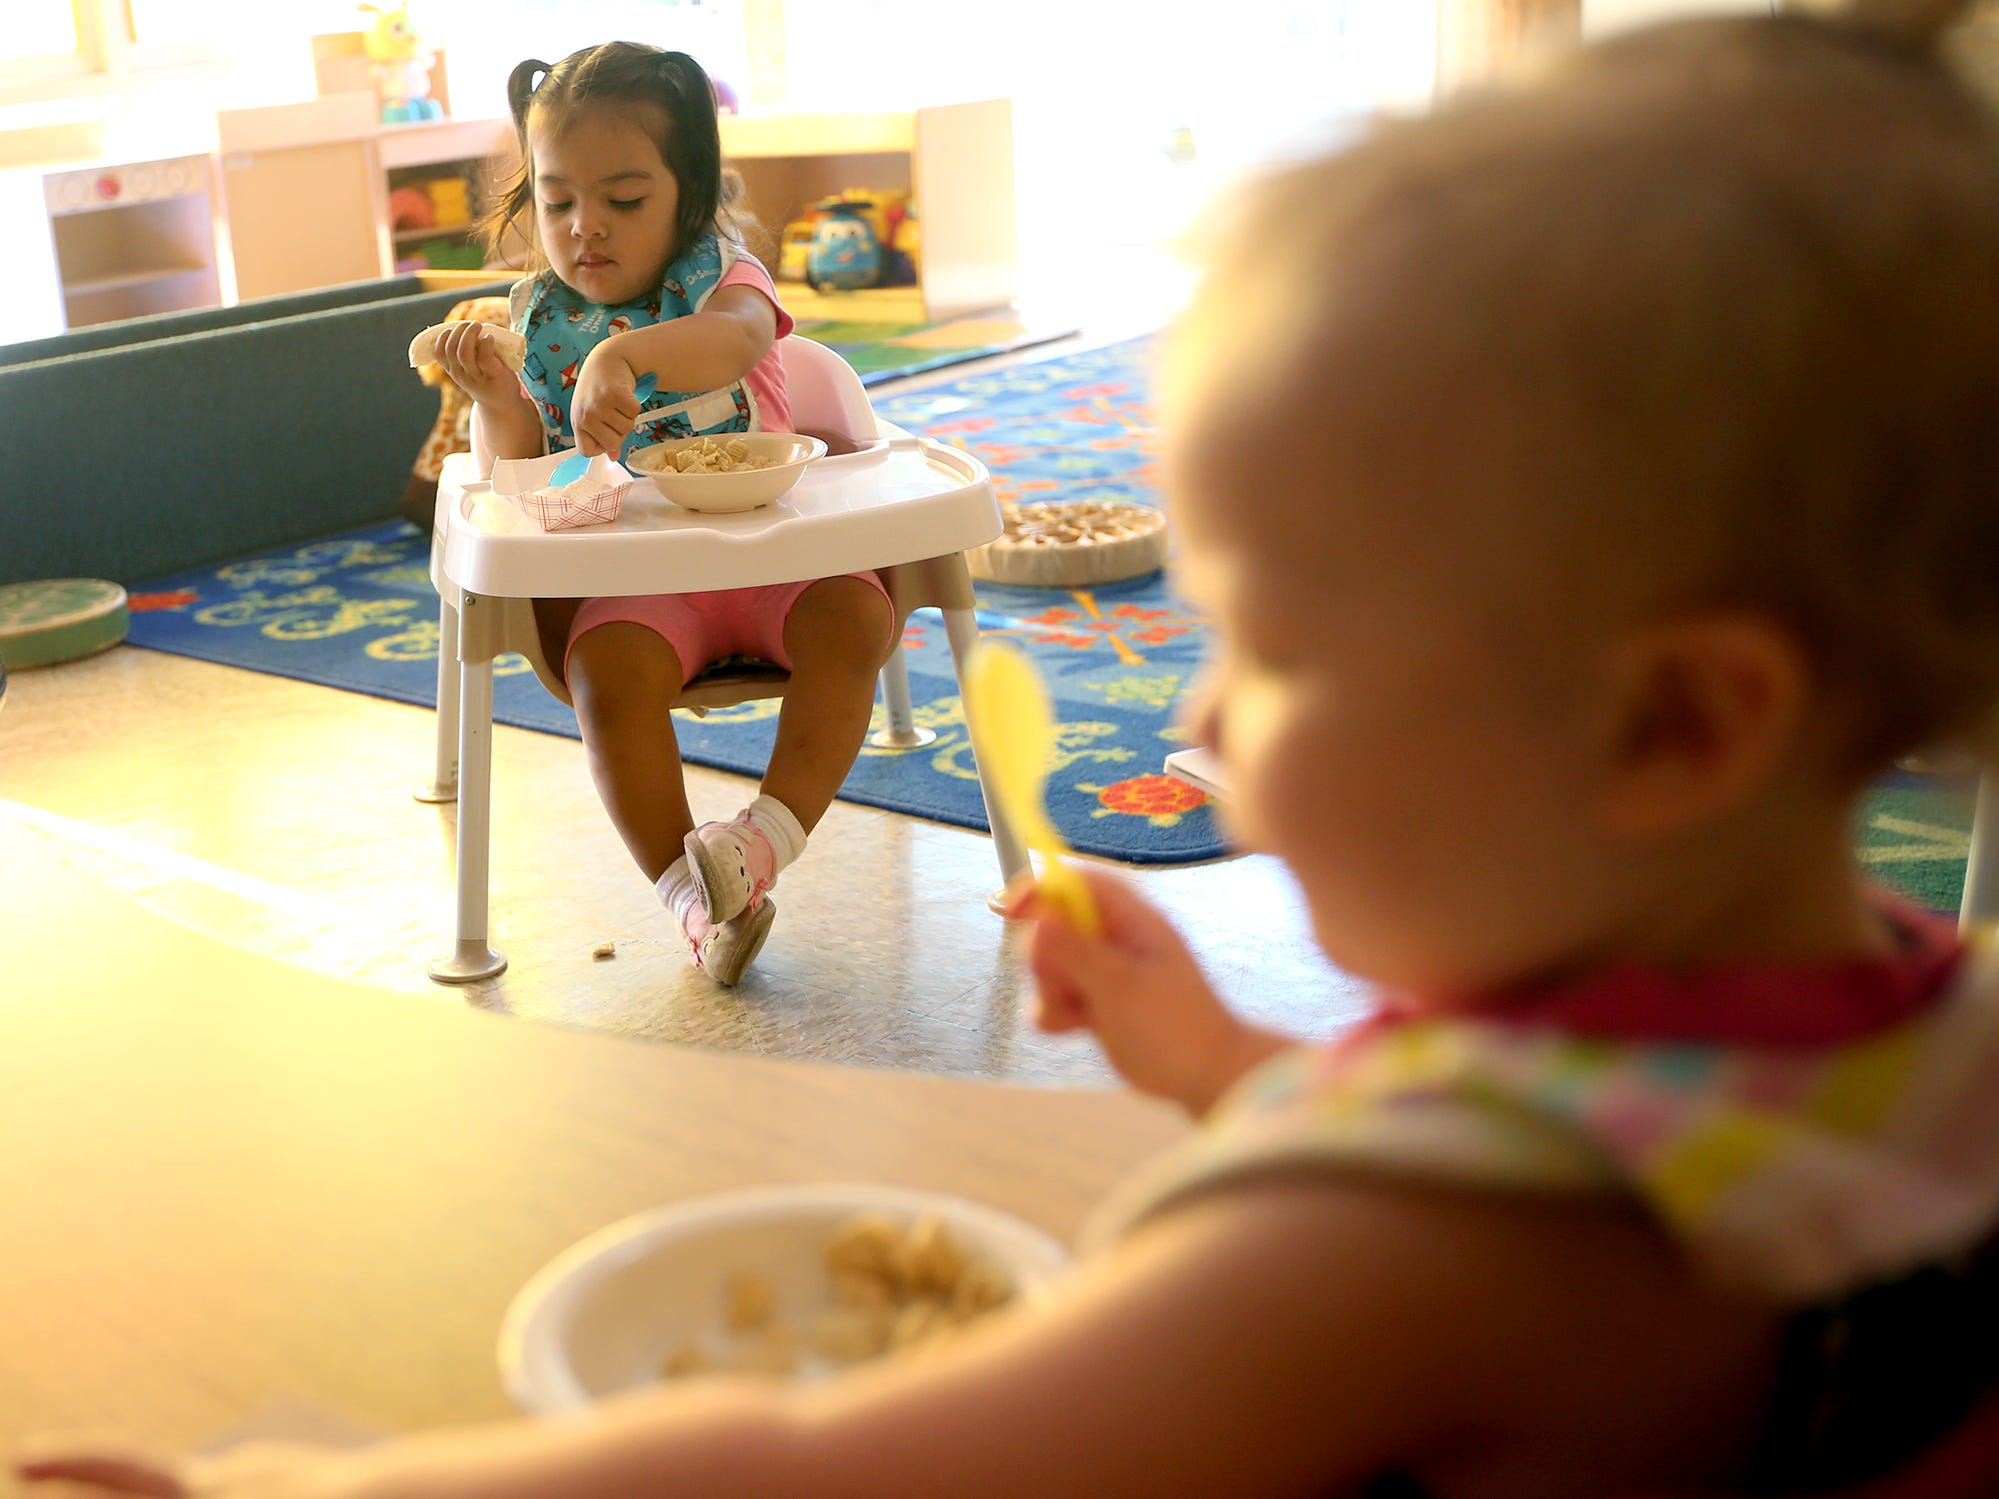 Khaleesi Fontes, 1, eats a bit of banana and yogurt for breakfast at the Marion Forsman-Boushie Early Learning Center in Poulsbo on Thursday, July 26, 2018.